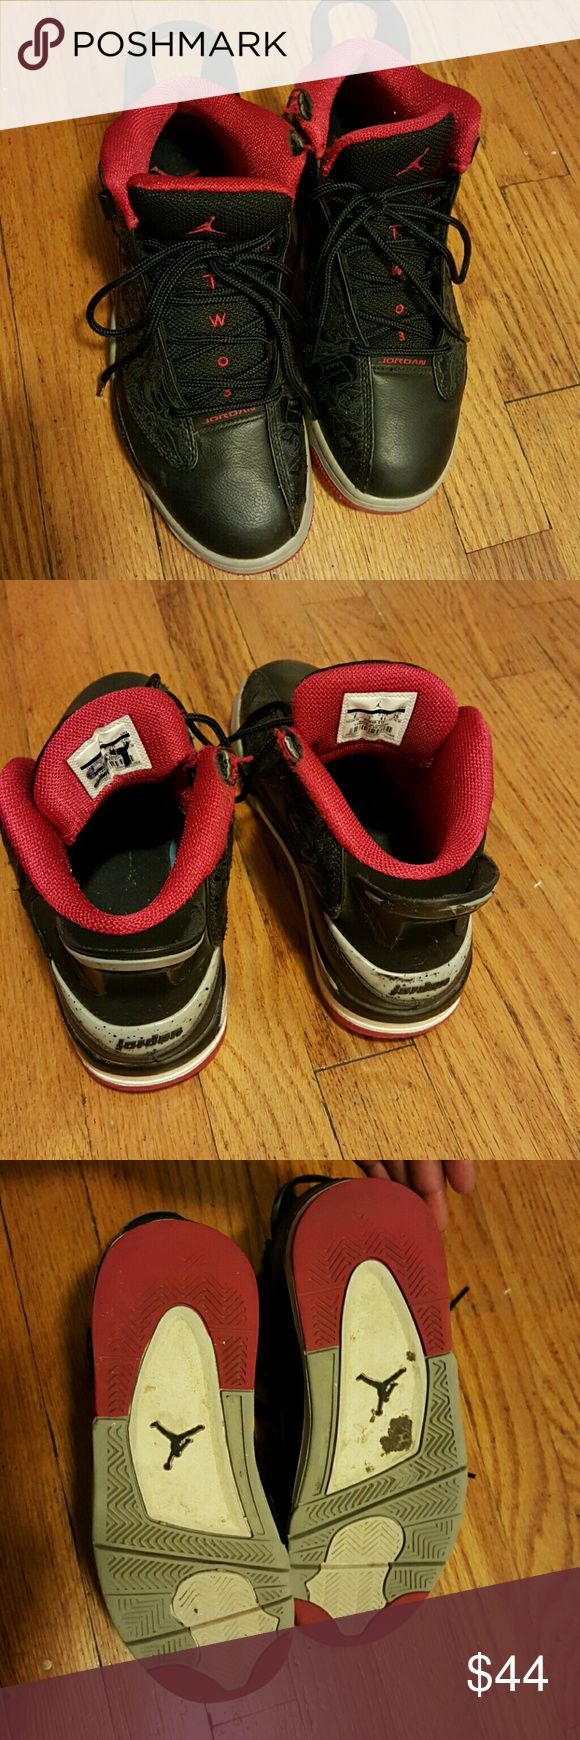 Men's  Jordan sneakers Authentic Jordan sneakers.  Passes the mommy's sniff test. Still has a semester of wear left. In great condition,  new lace. Please note there is an initial on the right foot from the previous owner. Jordan Shoes Sneakers